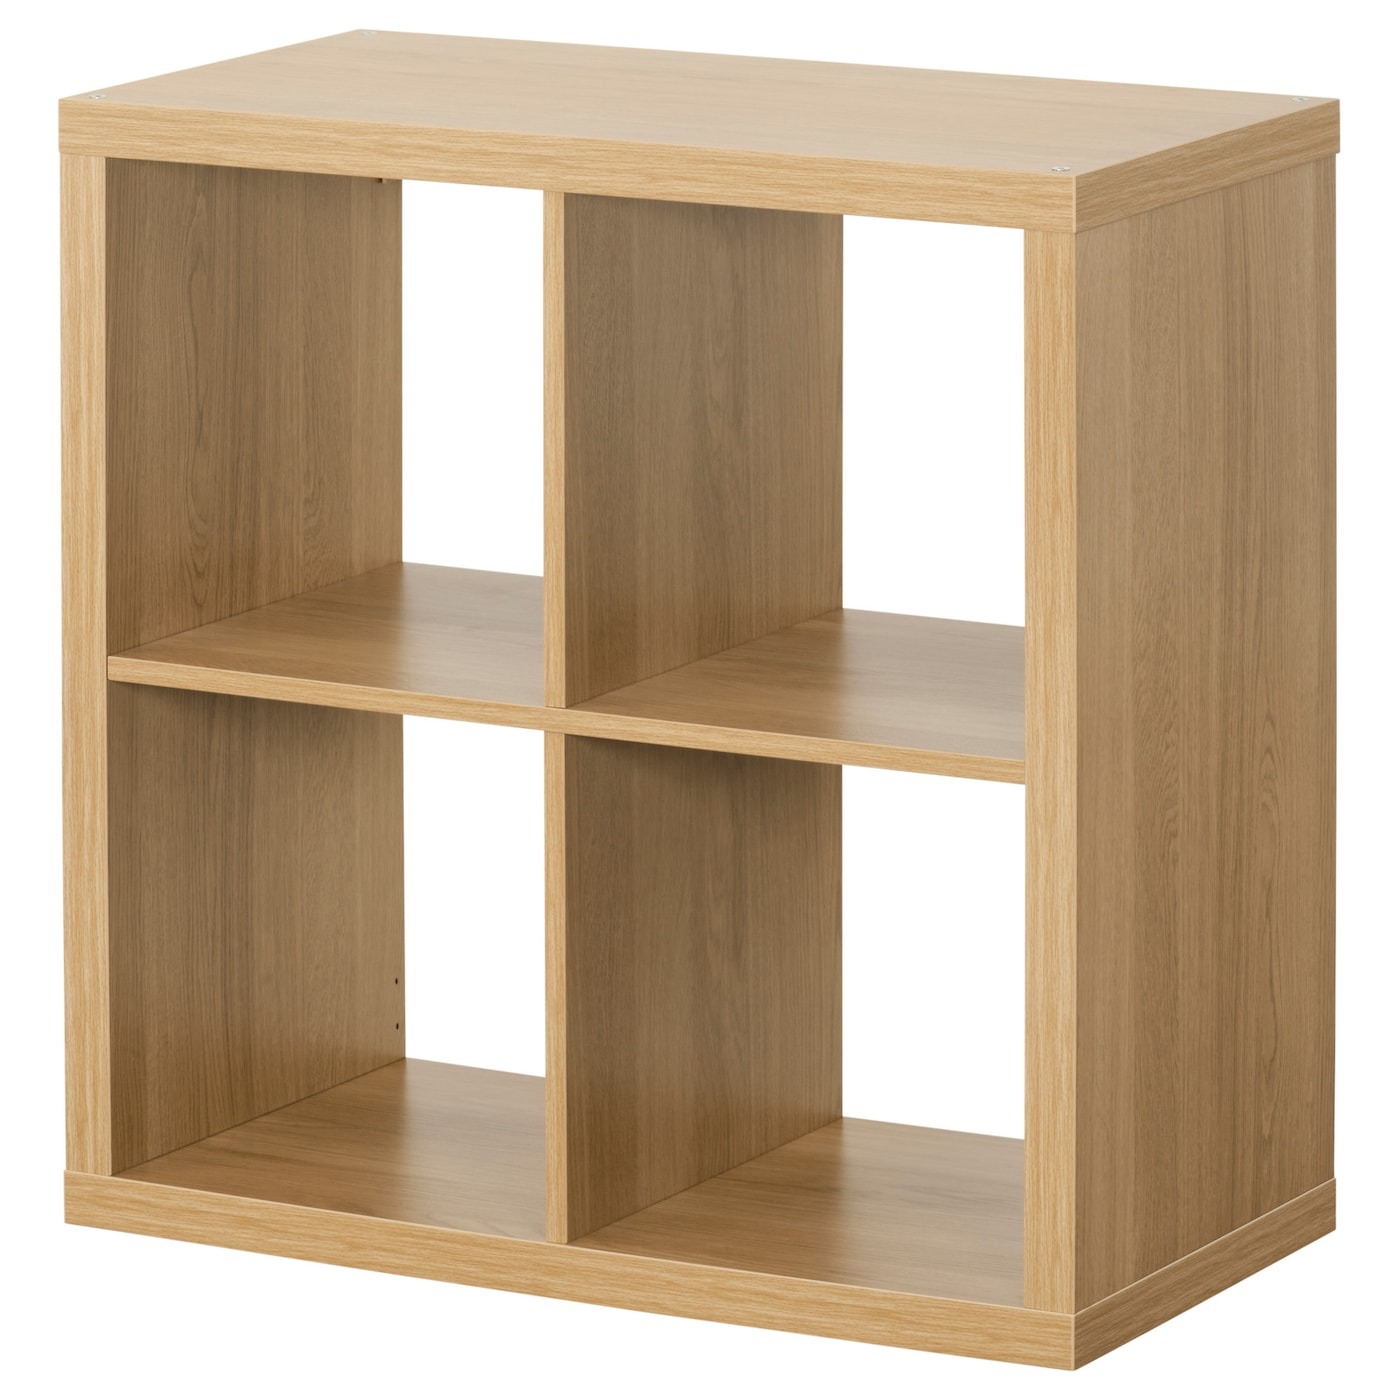 Cube storage storage cubes ikea for Ikea box shelf unit